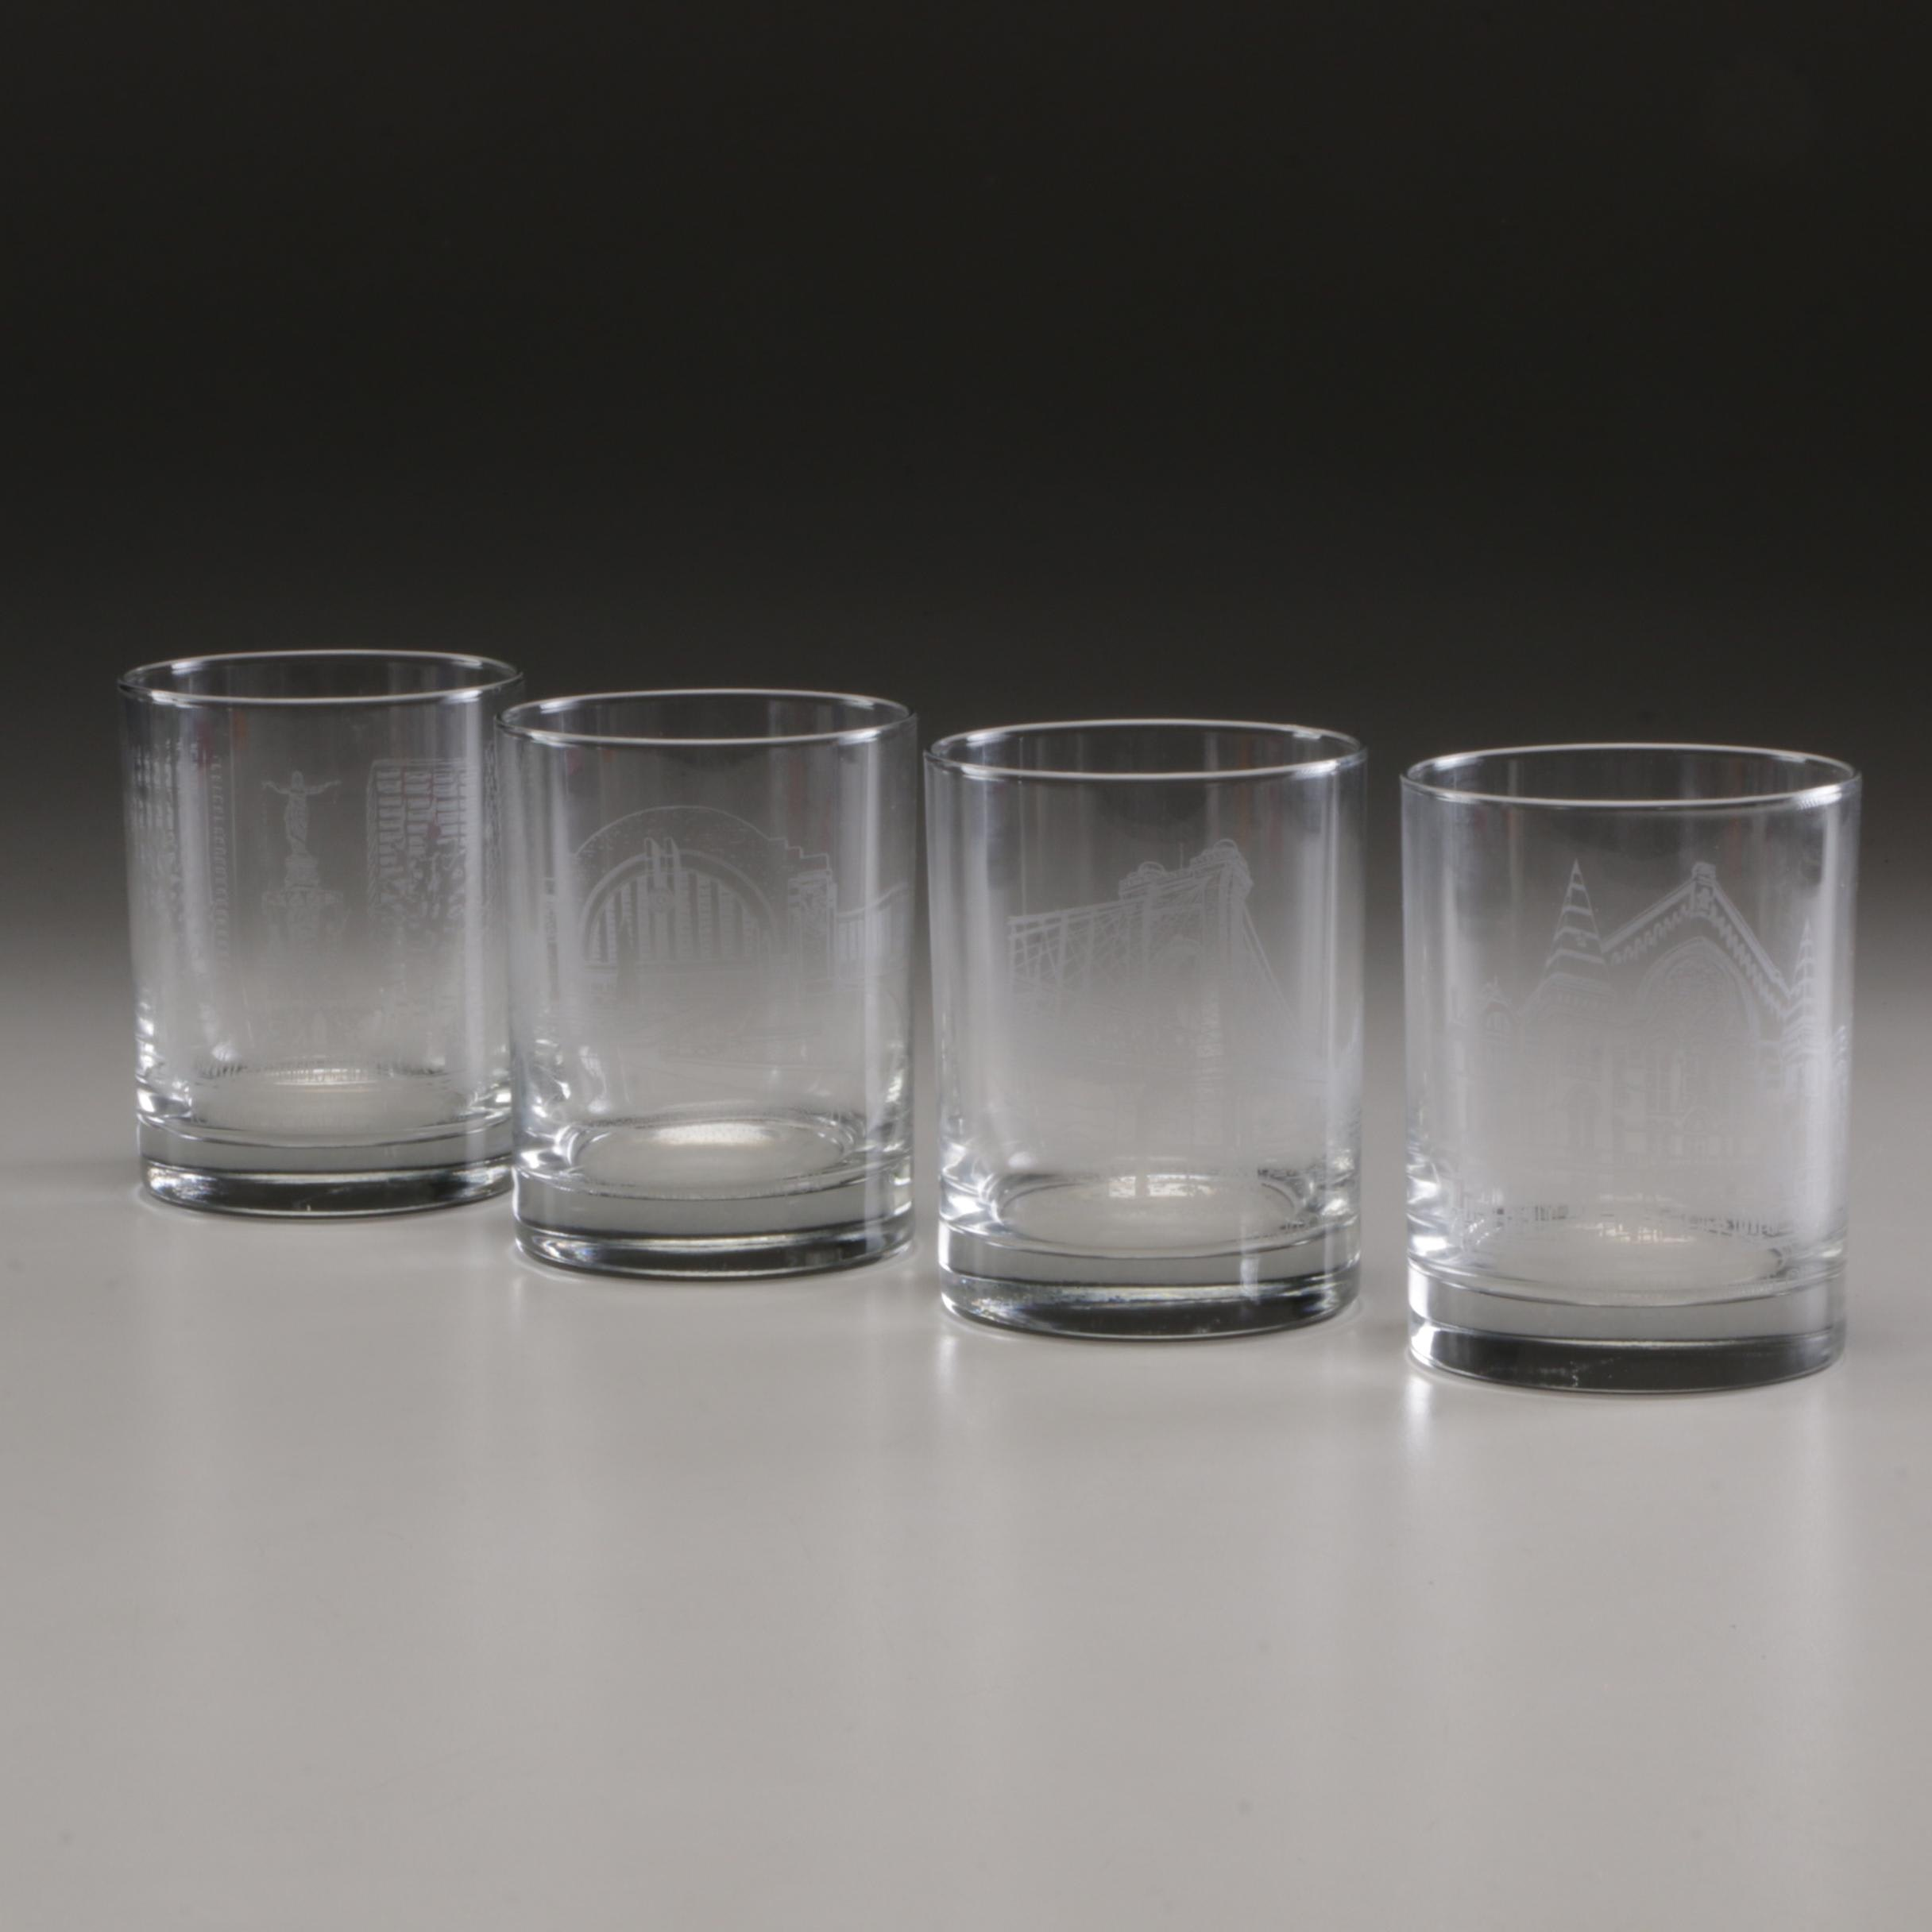 Group of Cincinnati Landmark Collectible Glasses